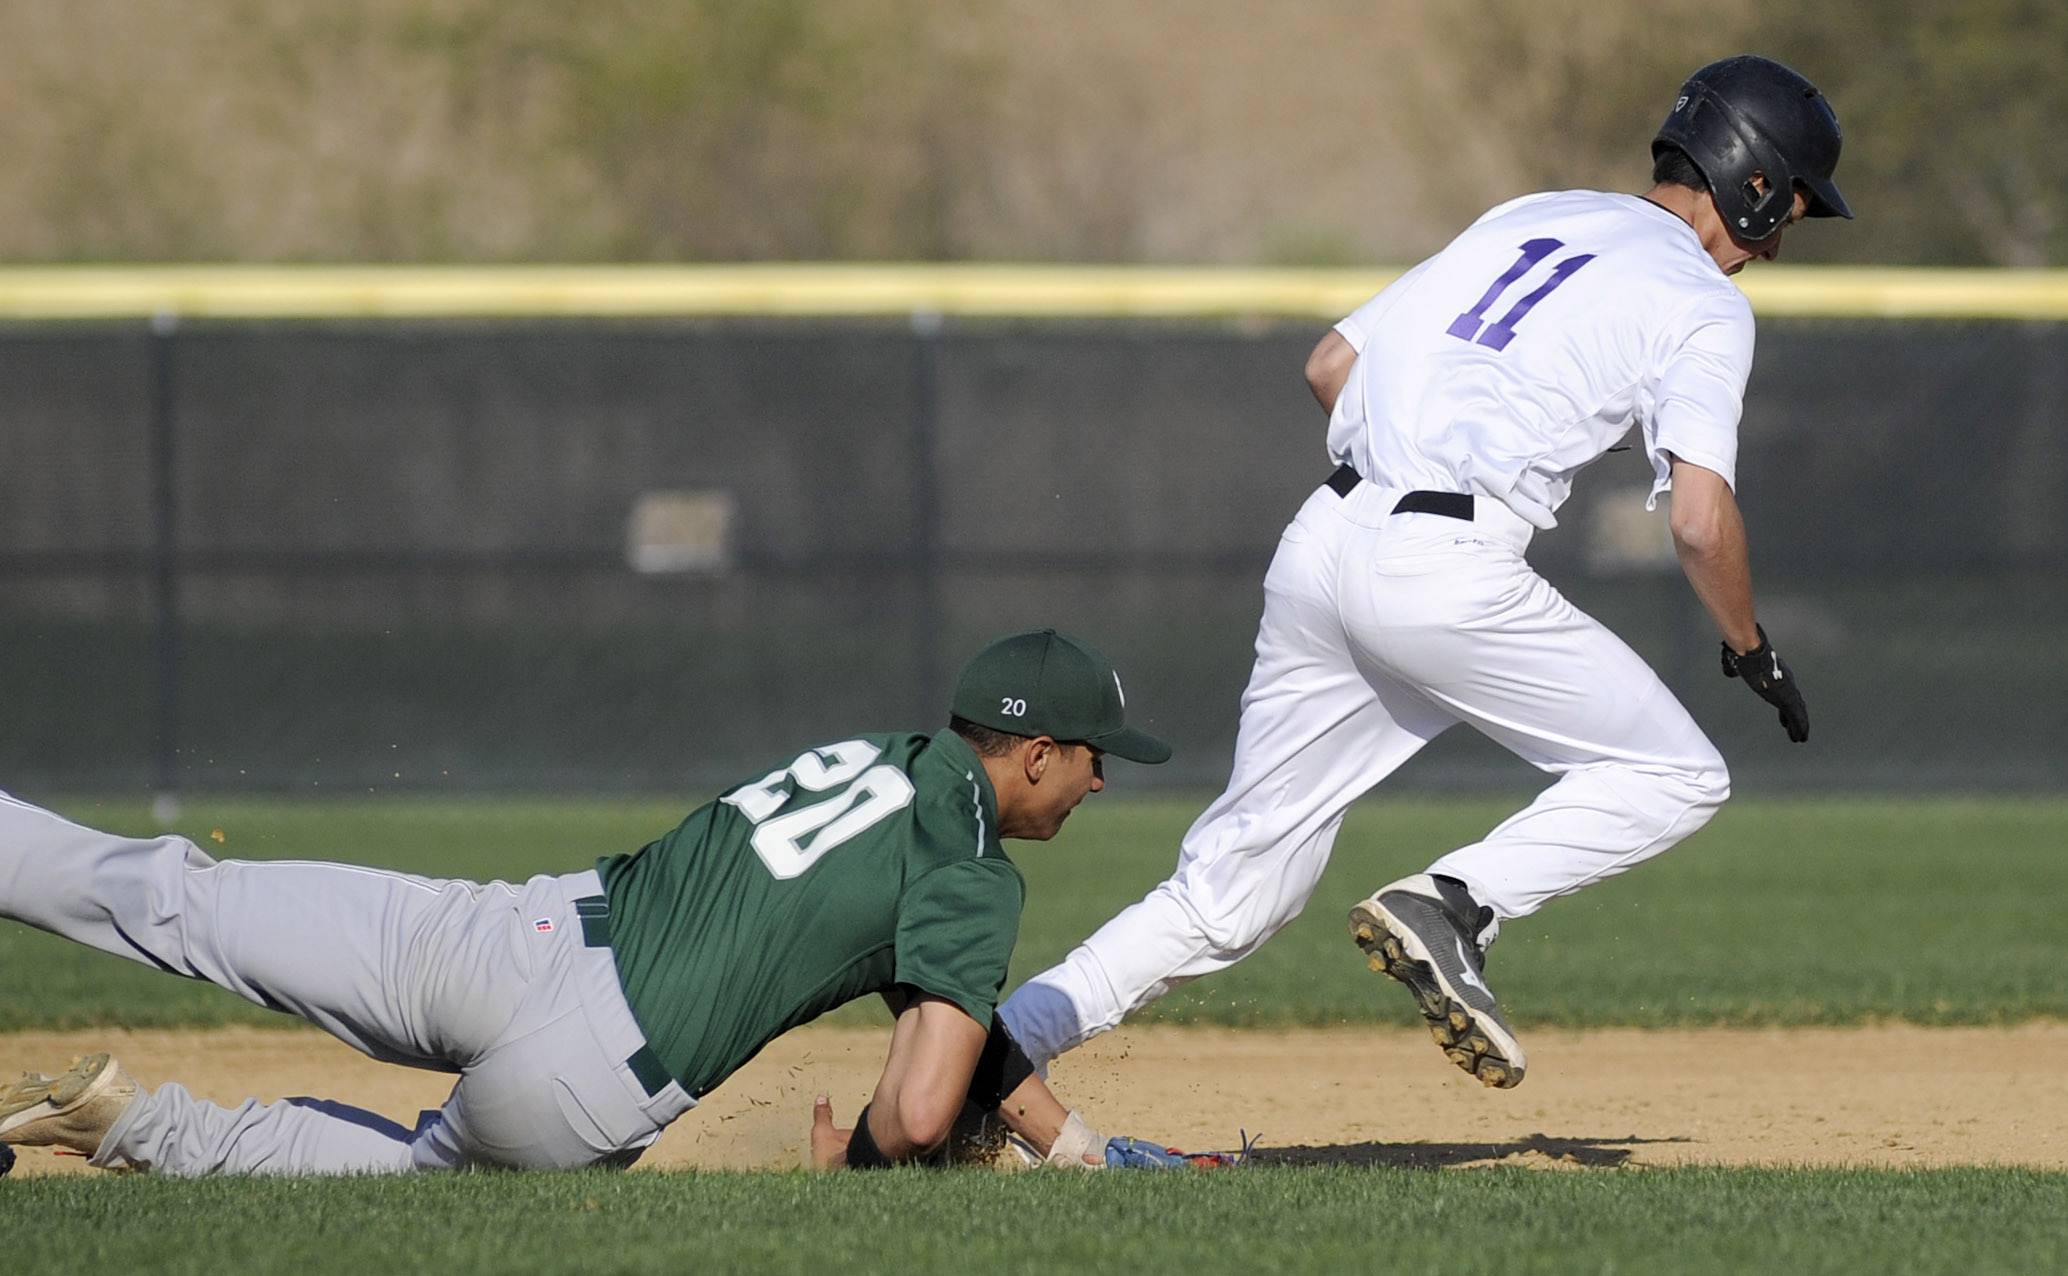 Grayslake Central's Freddie Landers tags out Hampshire's Alex Bahnick after chasing him between bases in the third inning at Hampshire Friday.